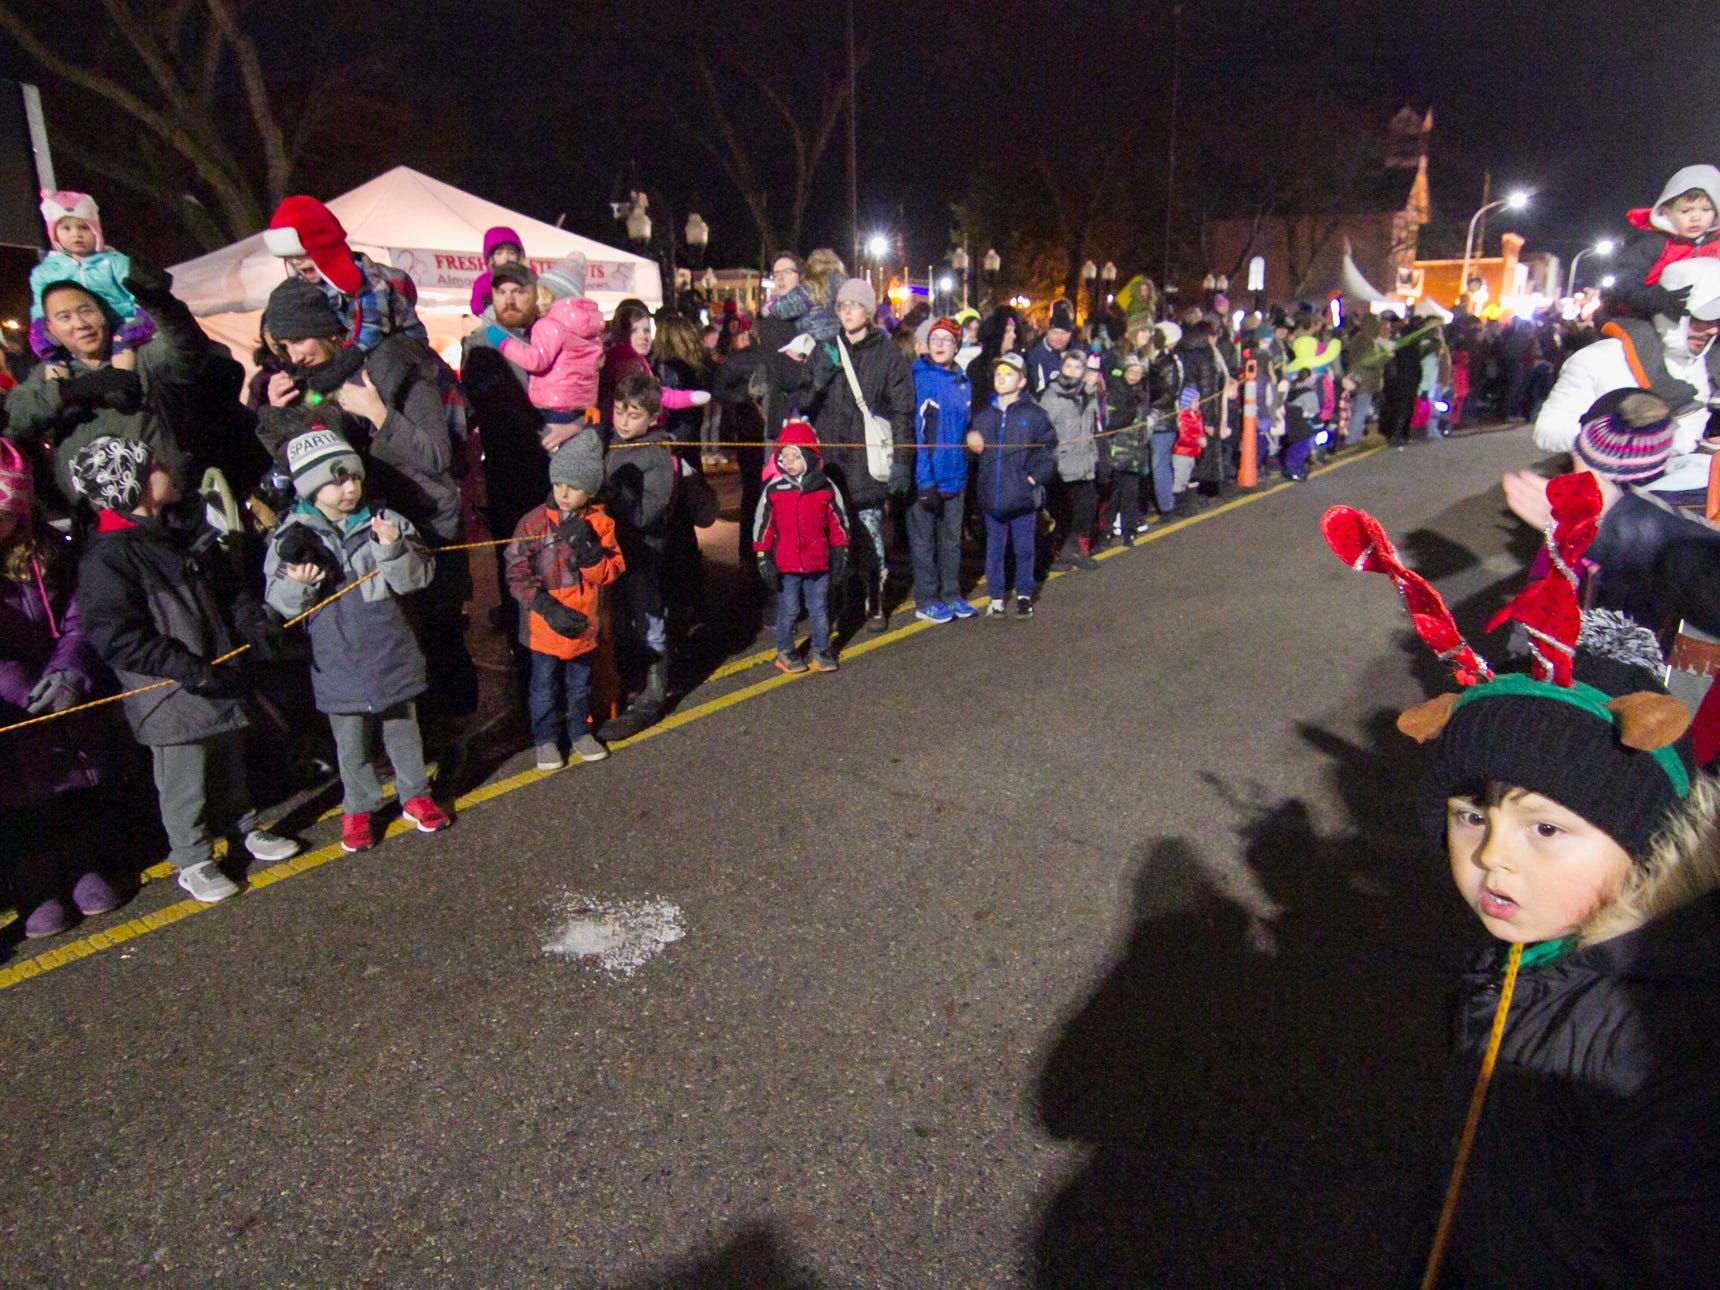 People line a roped-off path set up for the arrival of Santa Claus, who would be pulled by reindeer down Main Street in Brighton's Holiday Glow Saturday, Nov. 17, 2018.